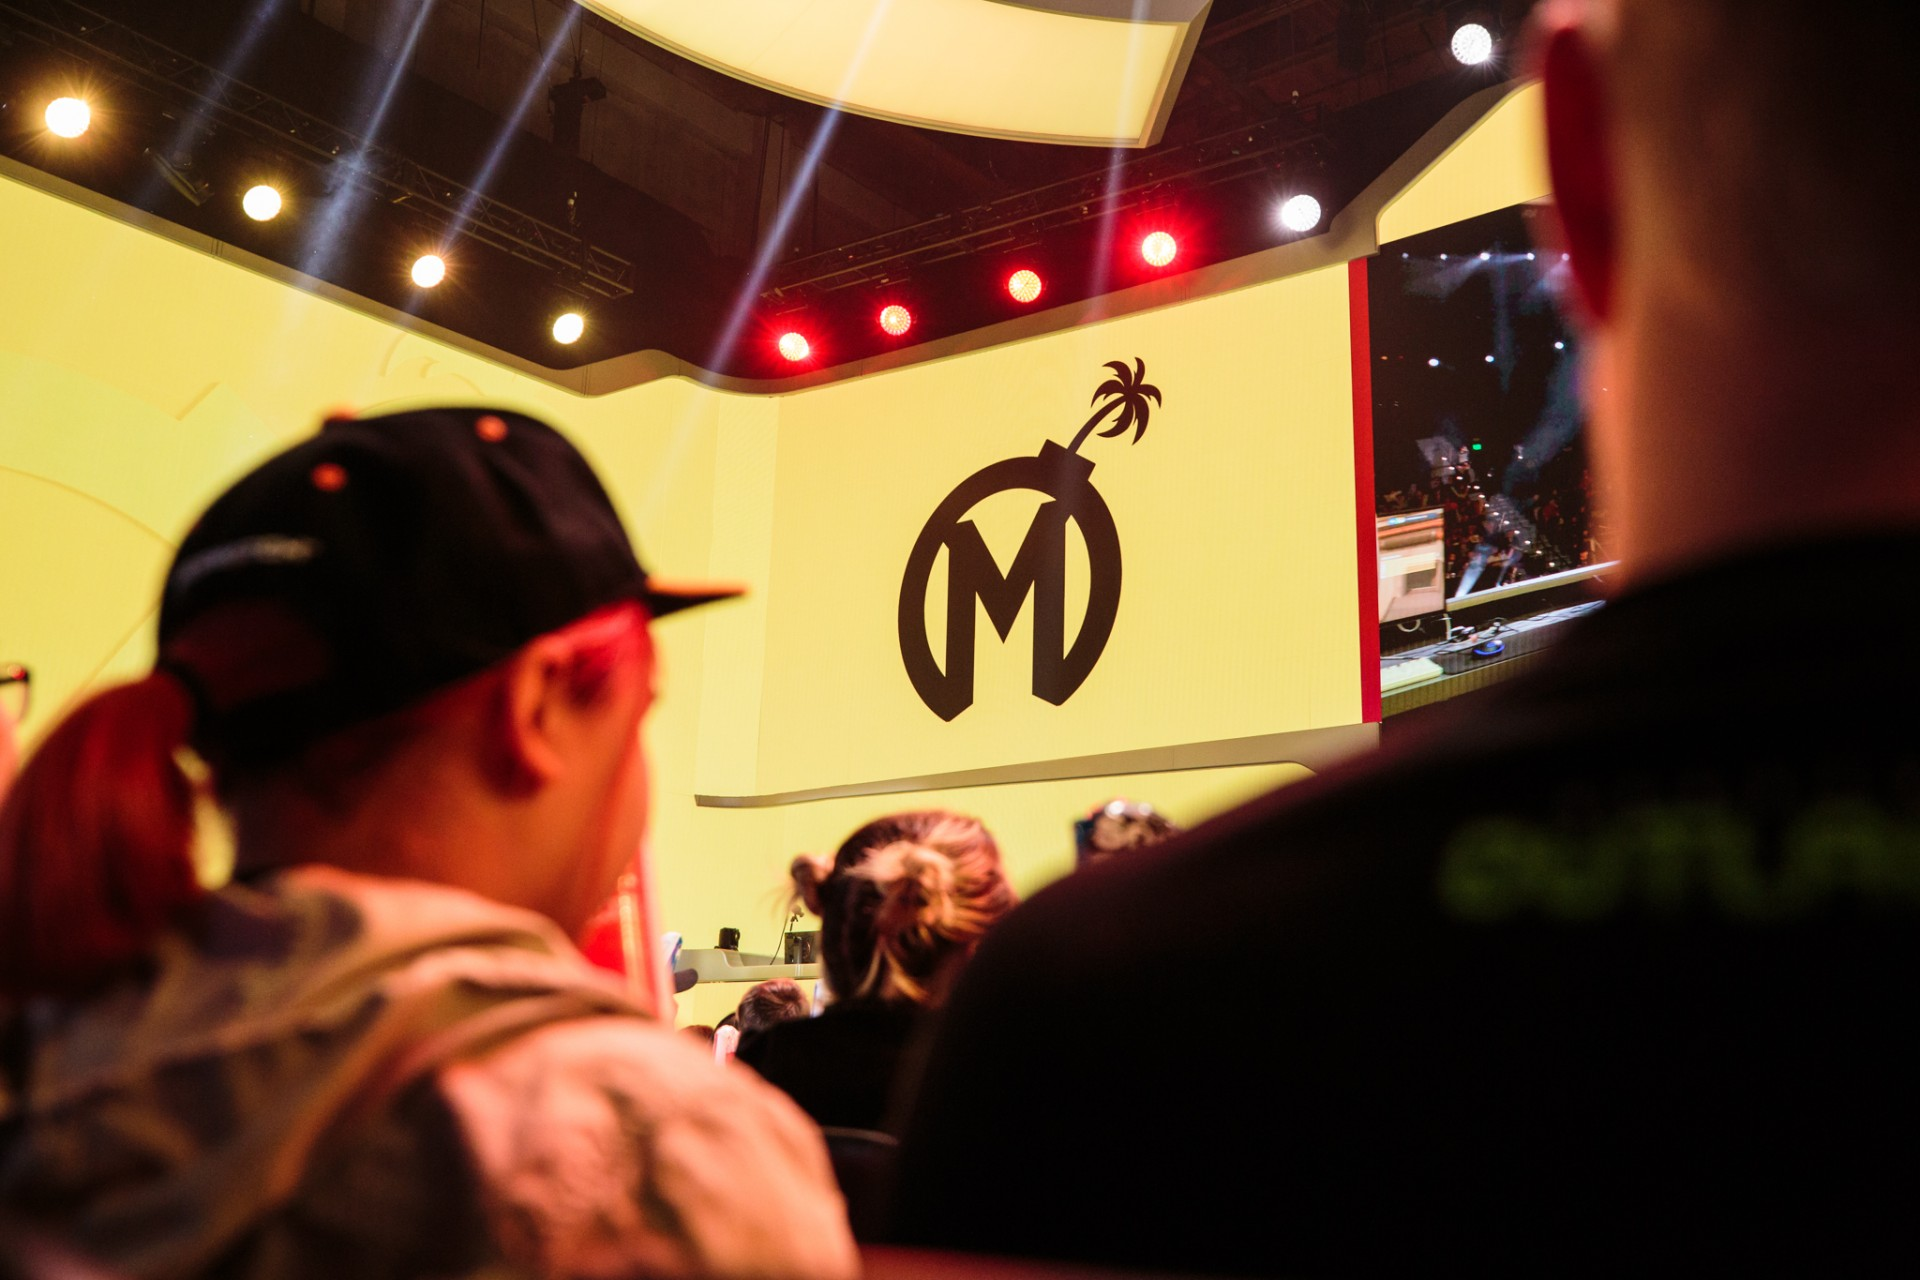 Florida Mayhem President writes a letter to their fans ahead of Season 2.